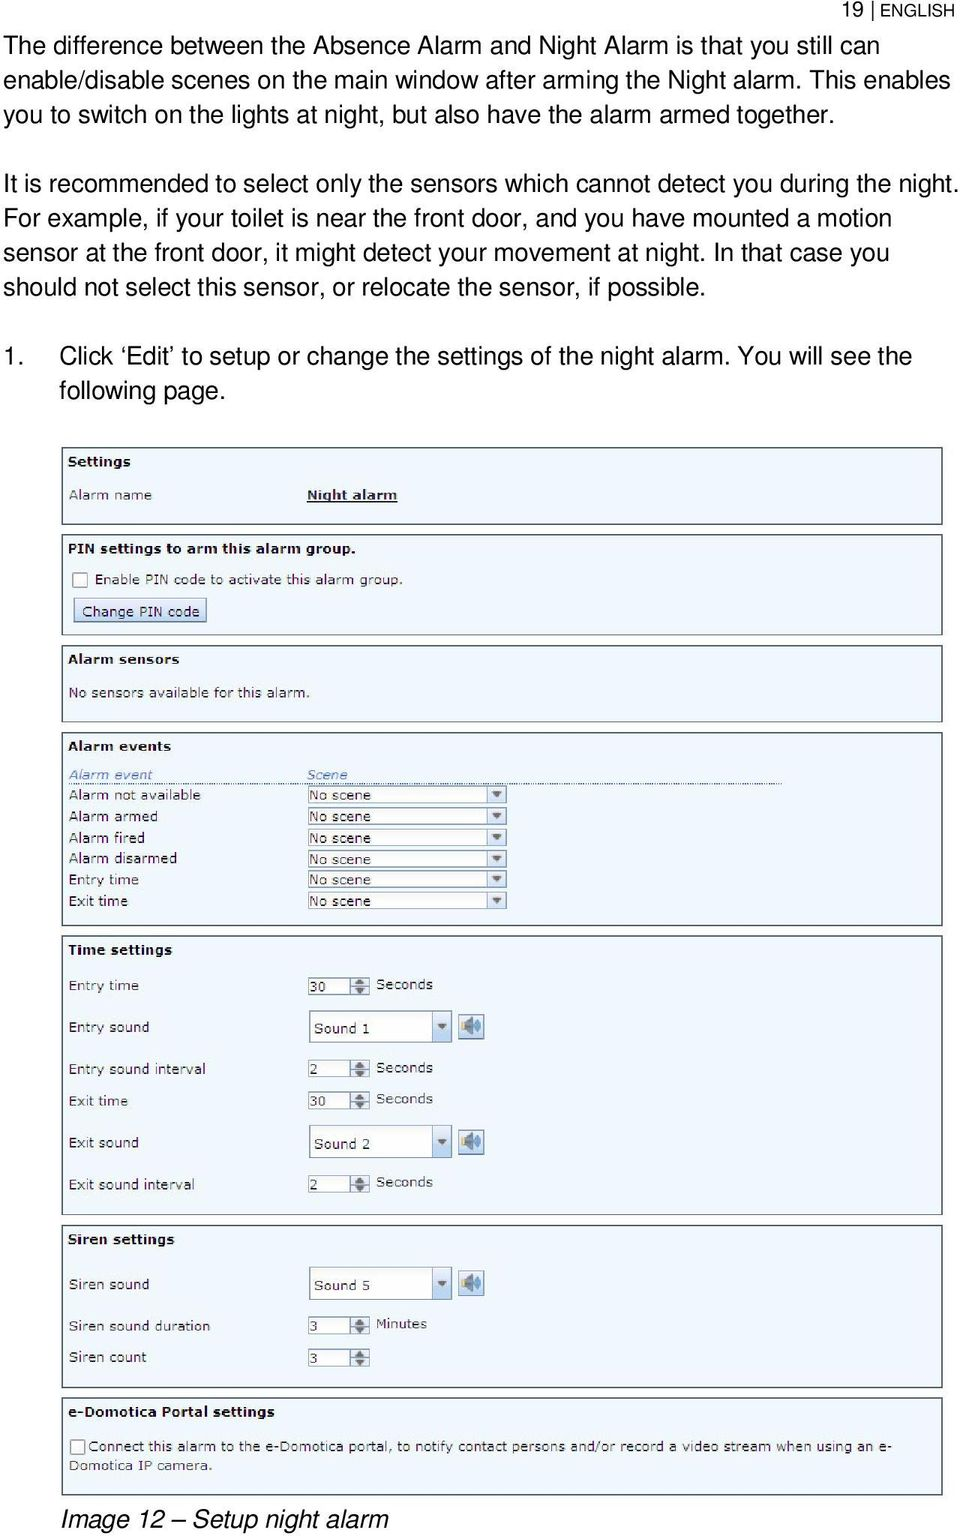 It is recommended to select only the sensors which cannot detect you during the night.